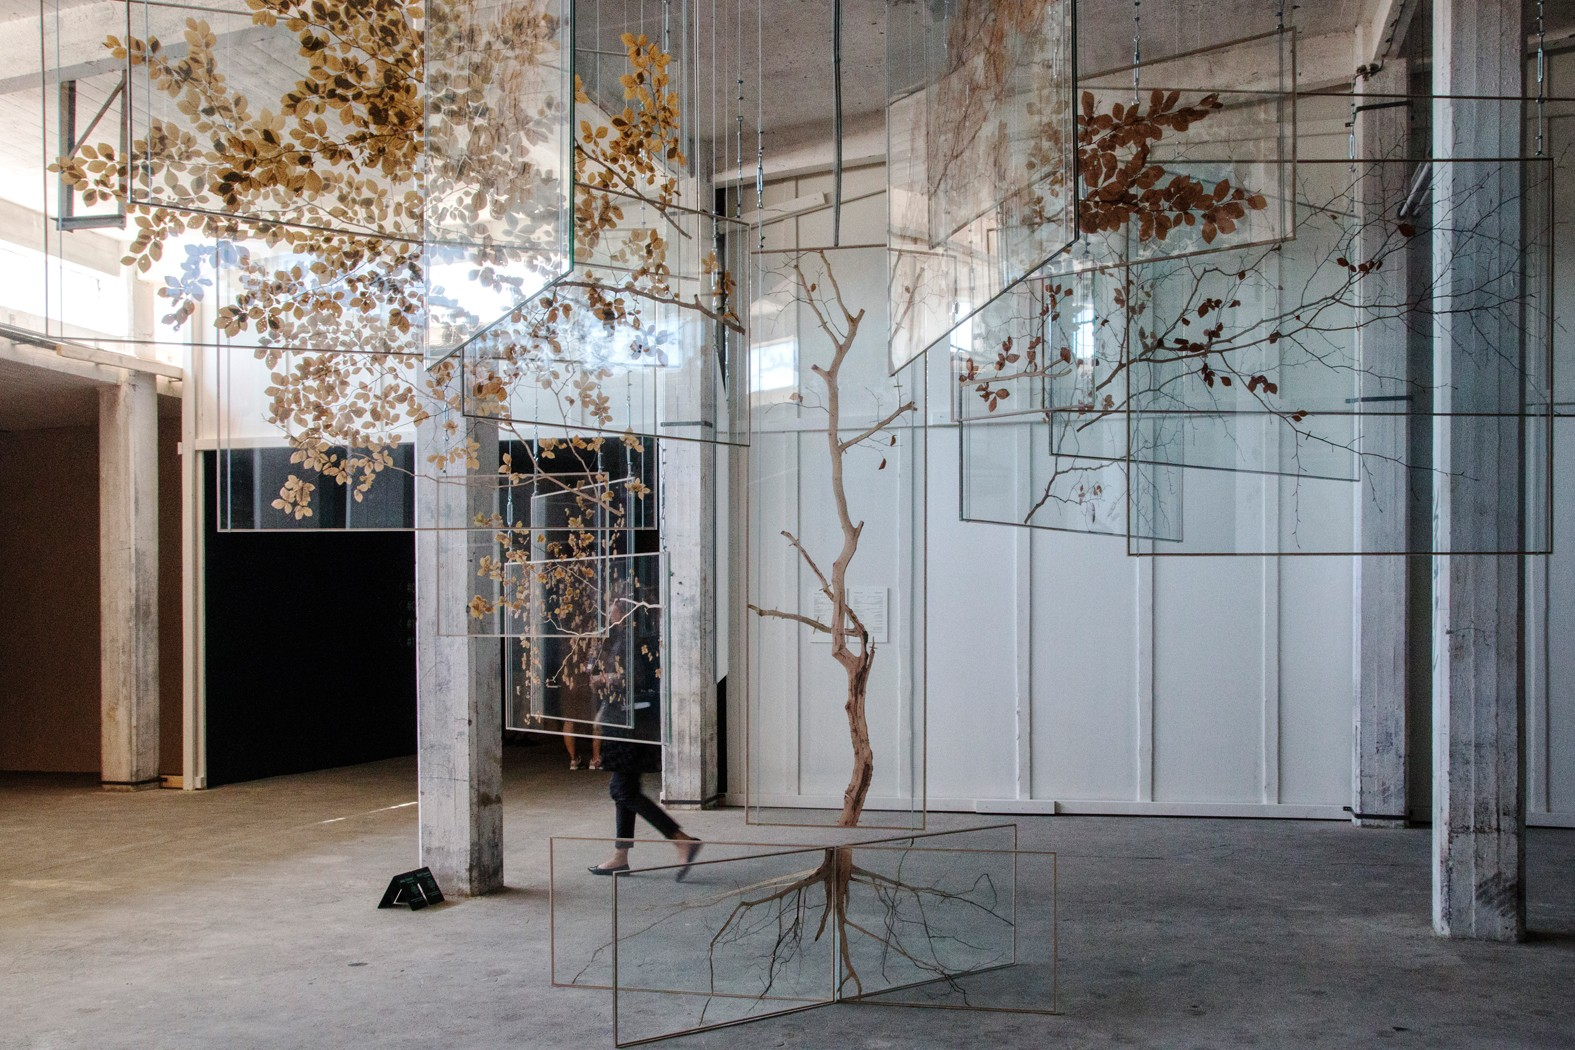 Aros Triennale The Garden, The present og The future billedserie</br>Rune Bosse, Aros Triennale The Garden.</br>Foto: Mariana Gil